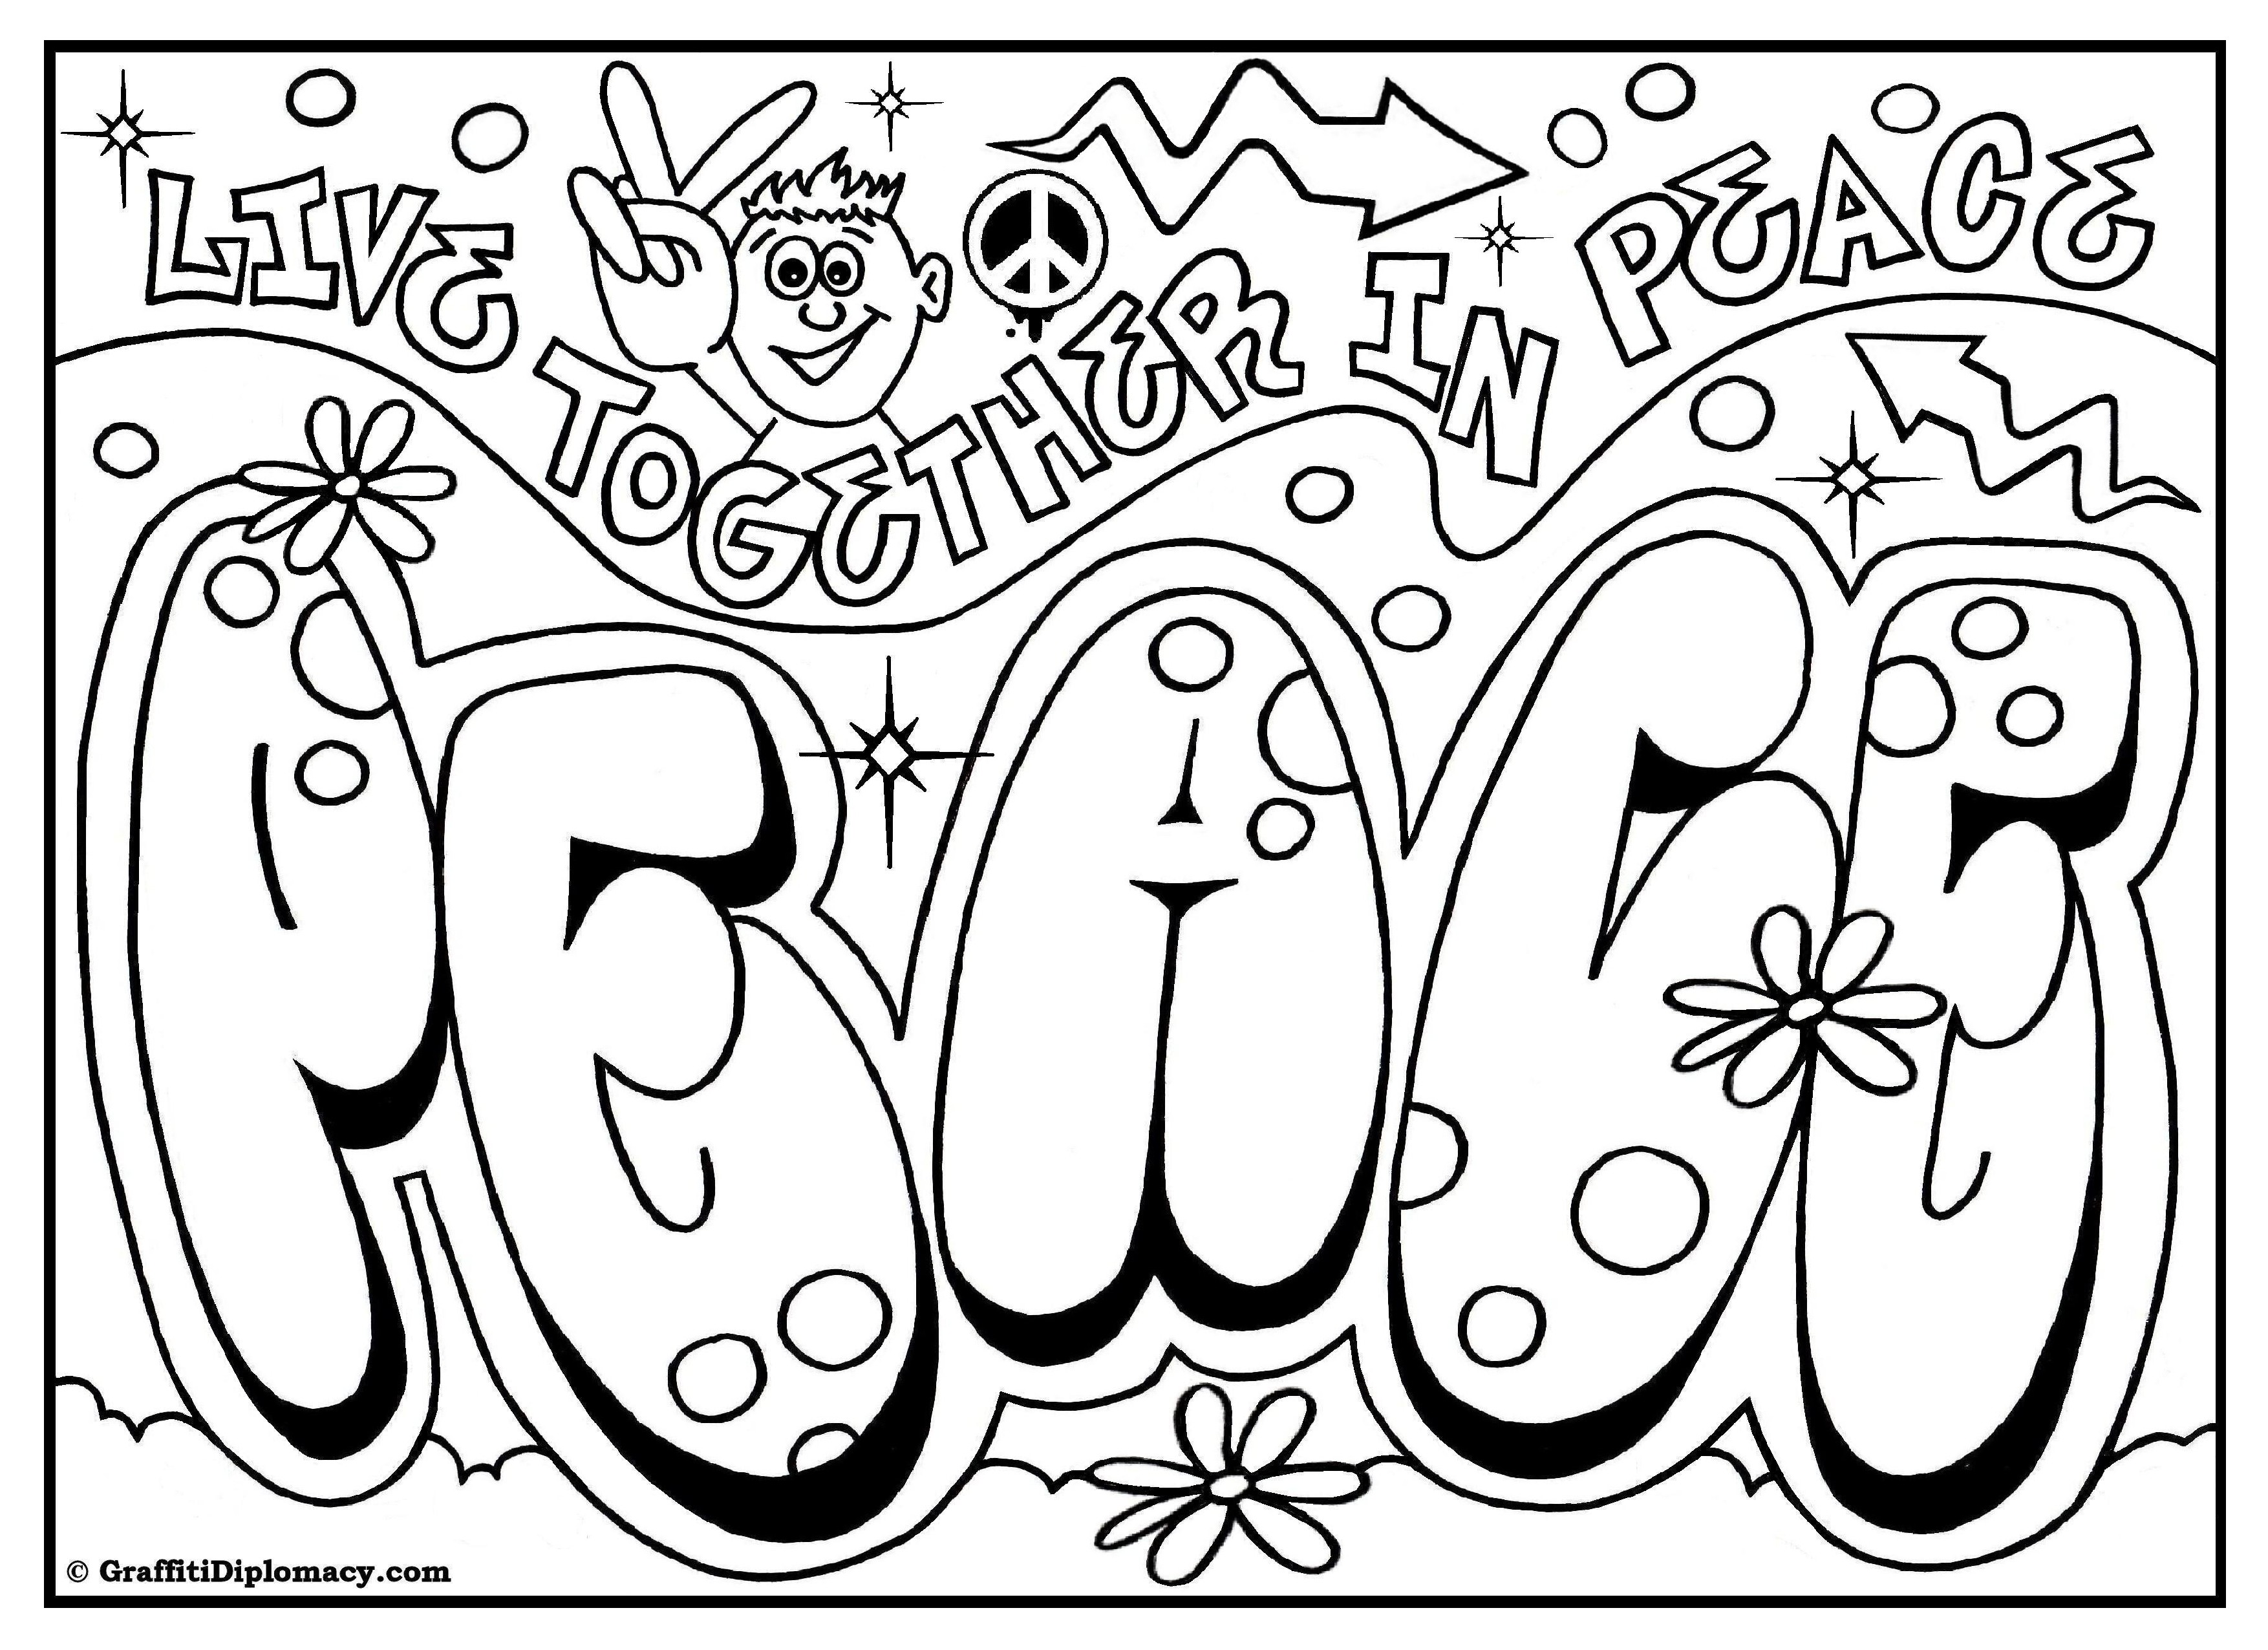 Graffiti Coloring Pages To Download And Print For Free